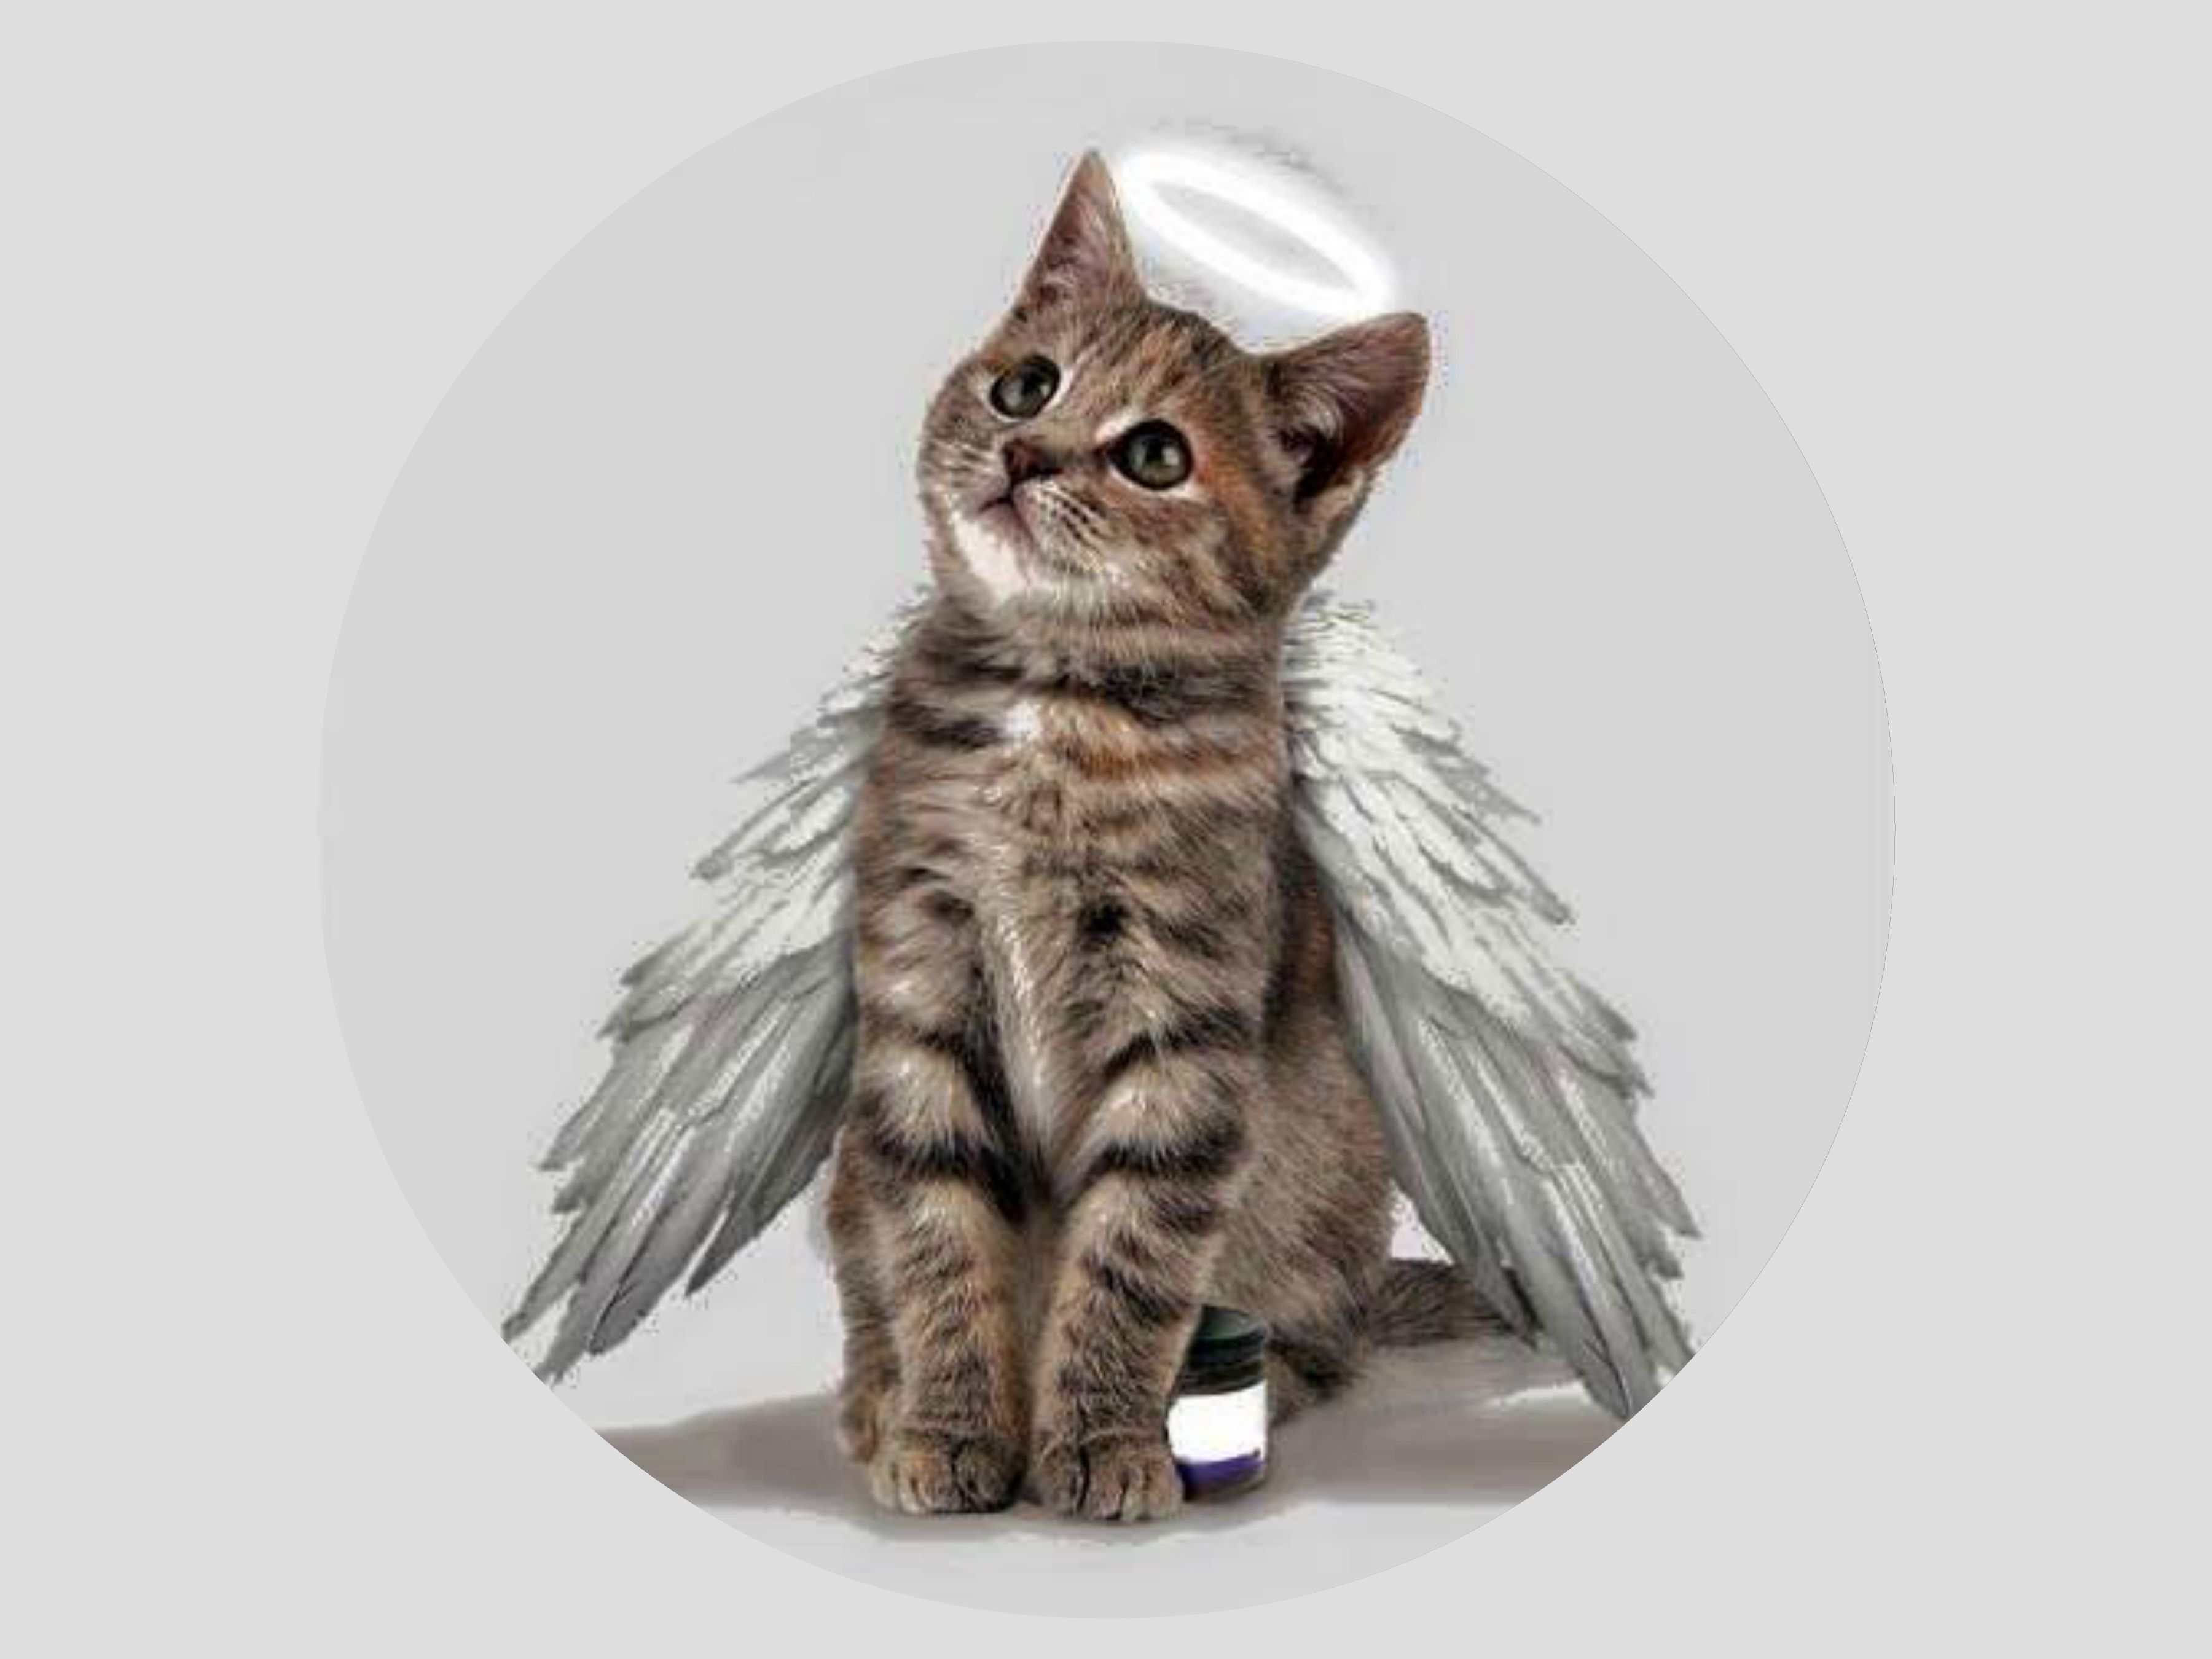 Pin By Gina On My Pizap Pets Cats Cats Angel Cat